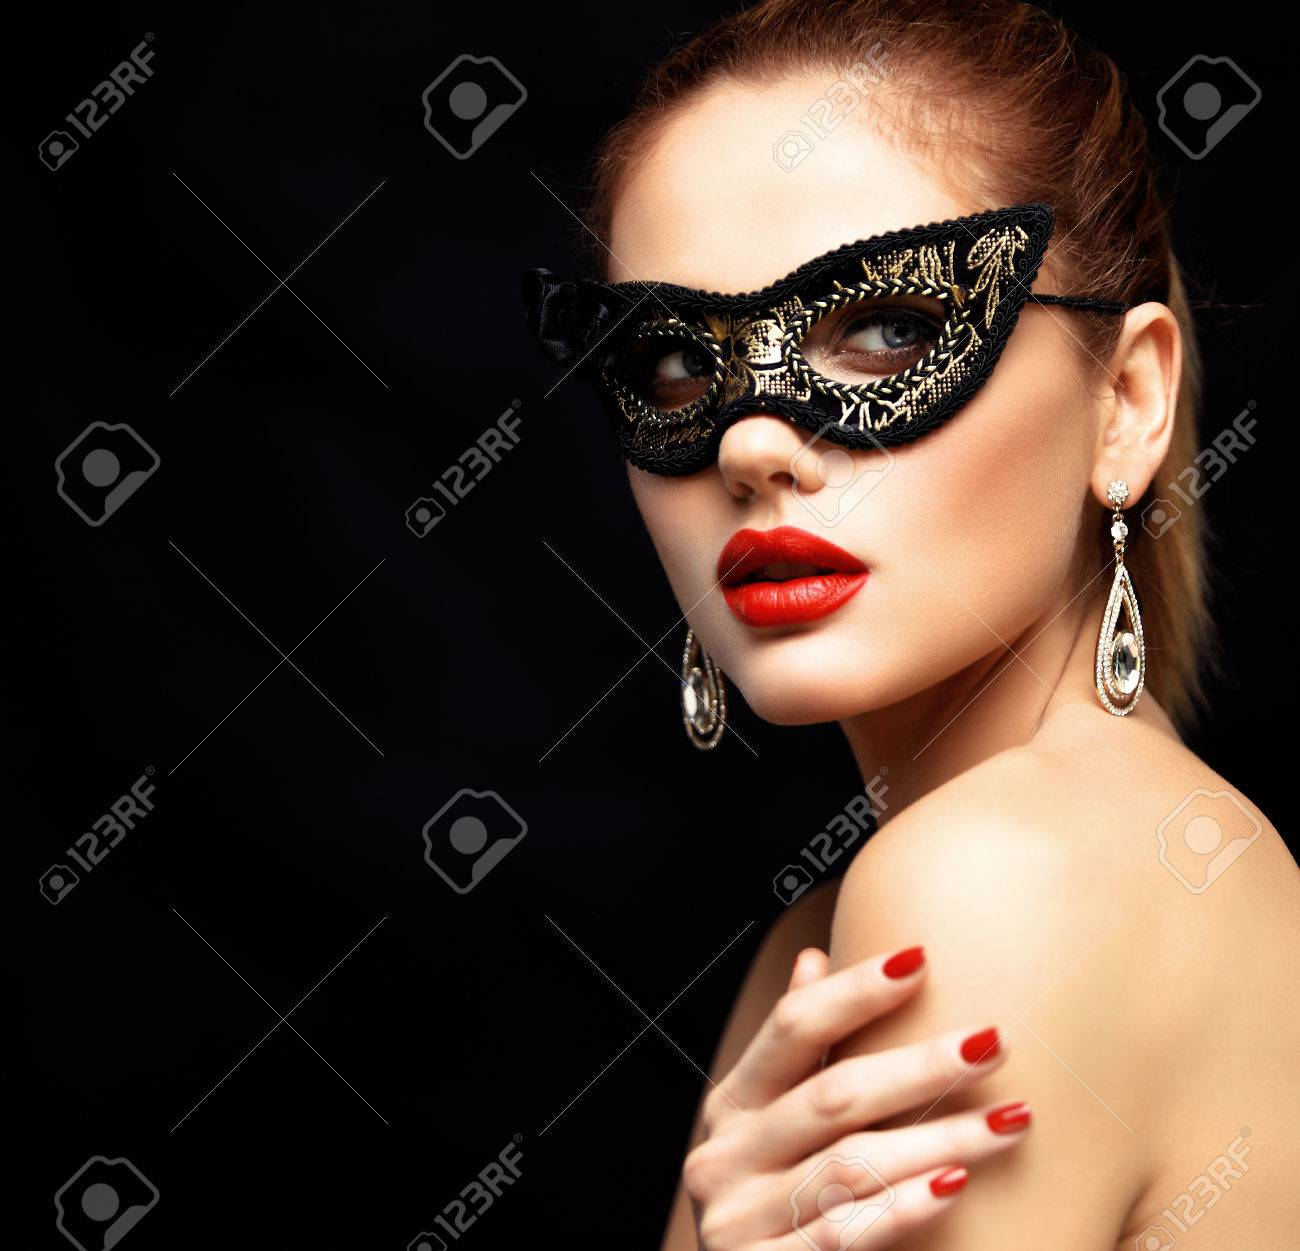 8f91fef2881d Beauty model woman wearing venetian masquerade carnival mask at party  isolated on black background. Christmas